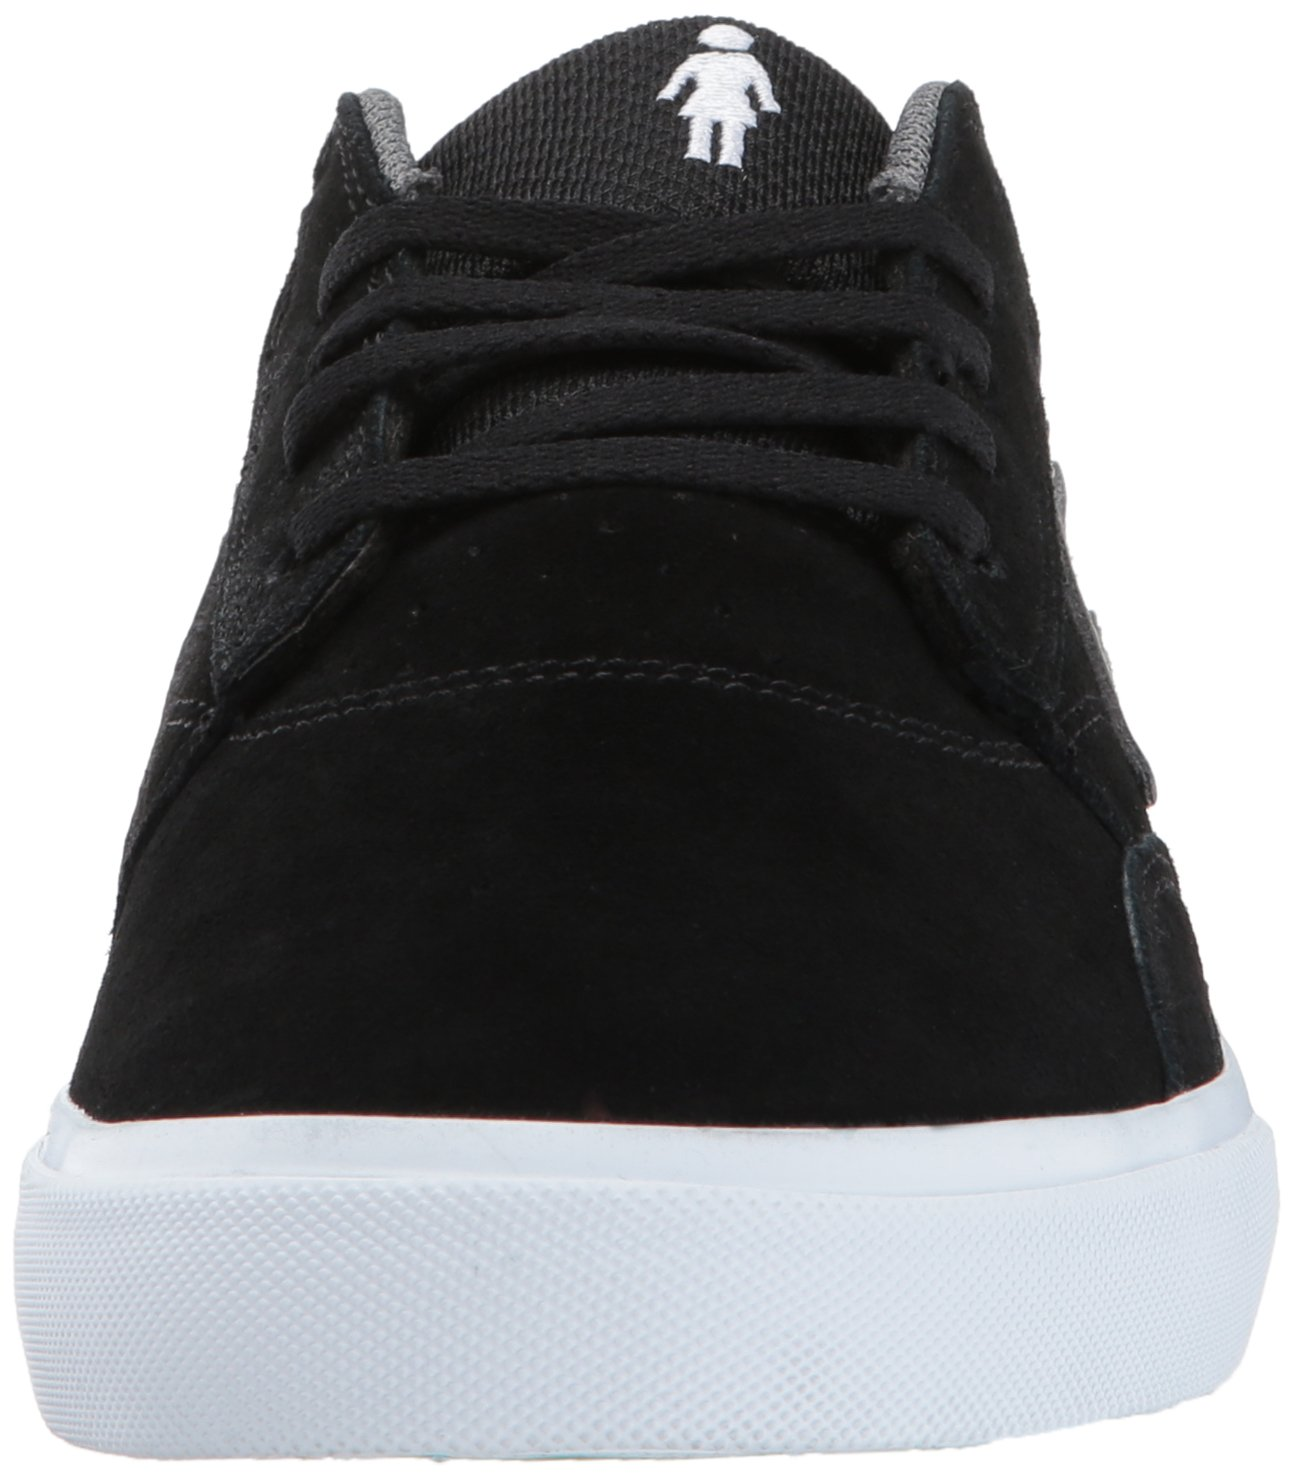 Lakai Griffin Skate Shoe B01MT8QX6I Suede 6.5 M US|Black/Grey Suede B01MT8QX6I 164356